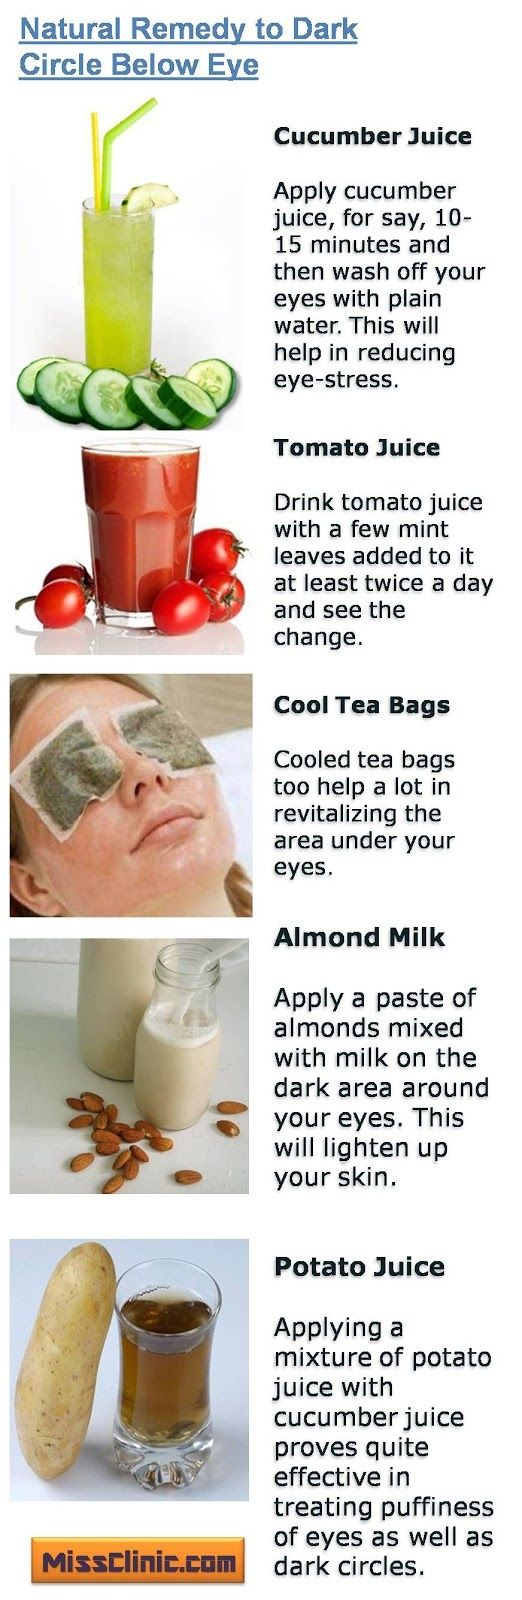 5 Home #Remedies to #Dark #Circle under Eyes